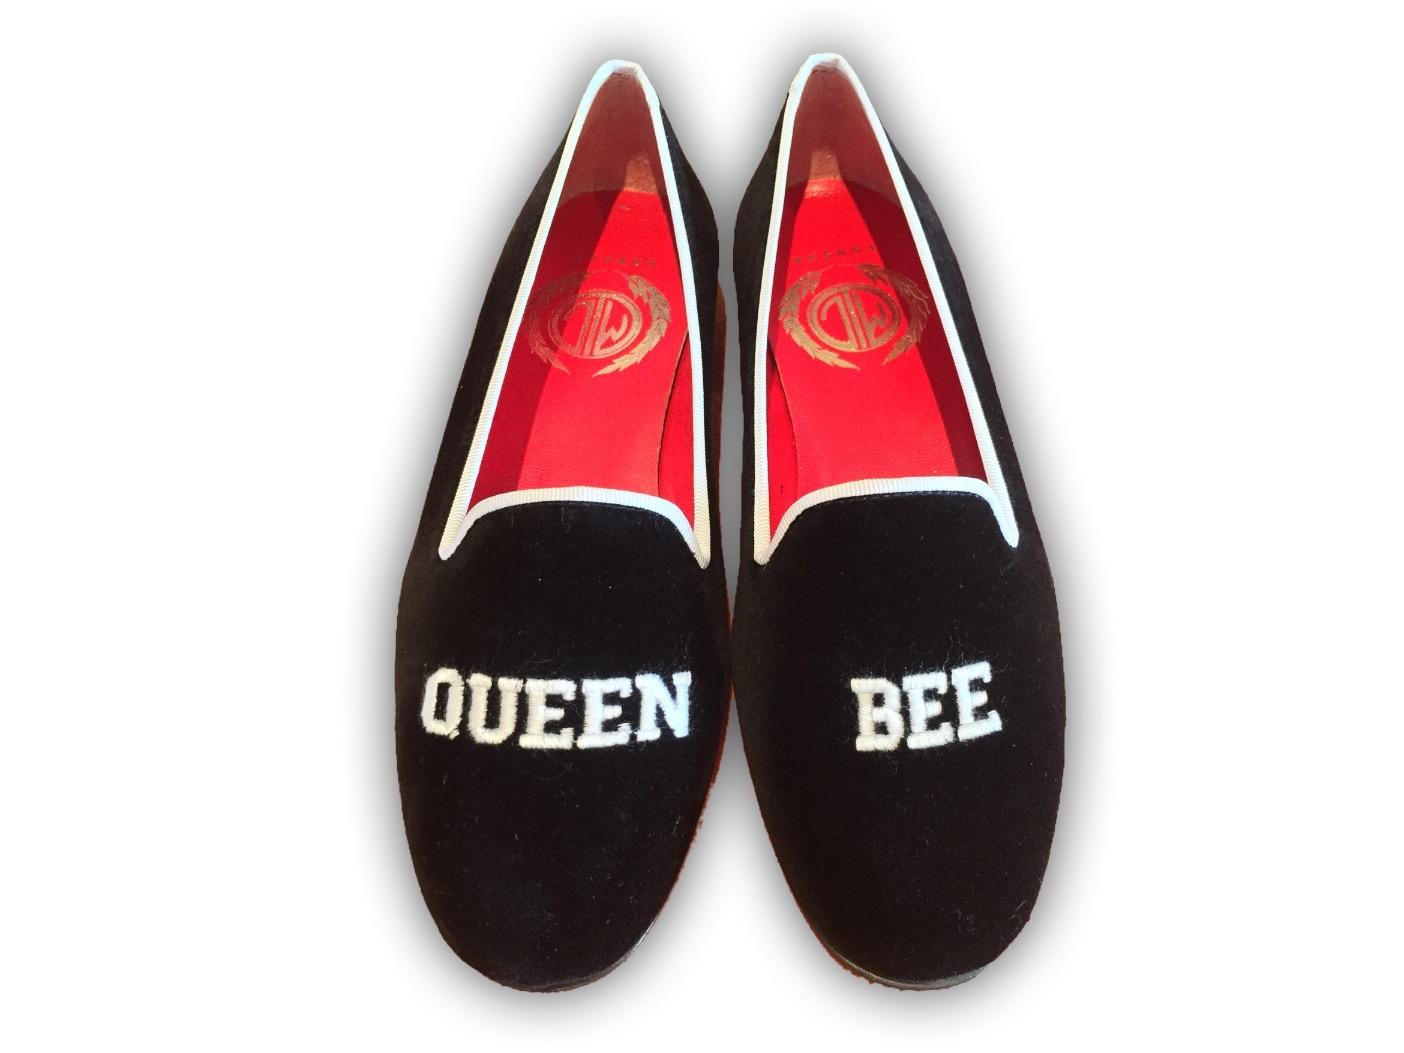 Manor of London QUEEN BEE Womens Black Velvet Leather Slip On Embroidery Luxury Custom Initials Slippers Top View